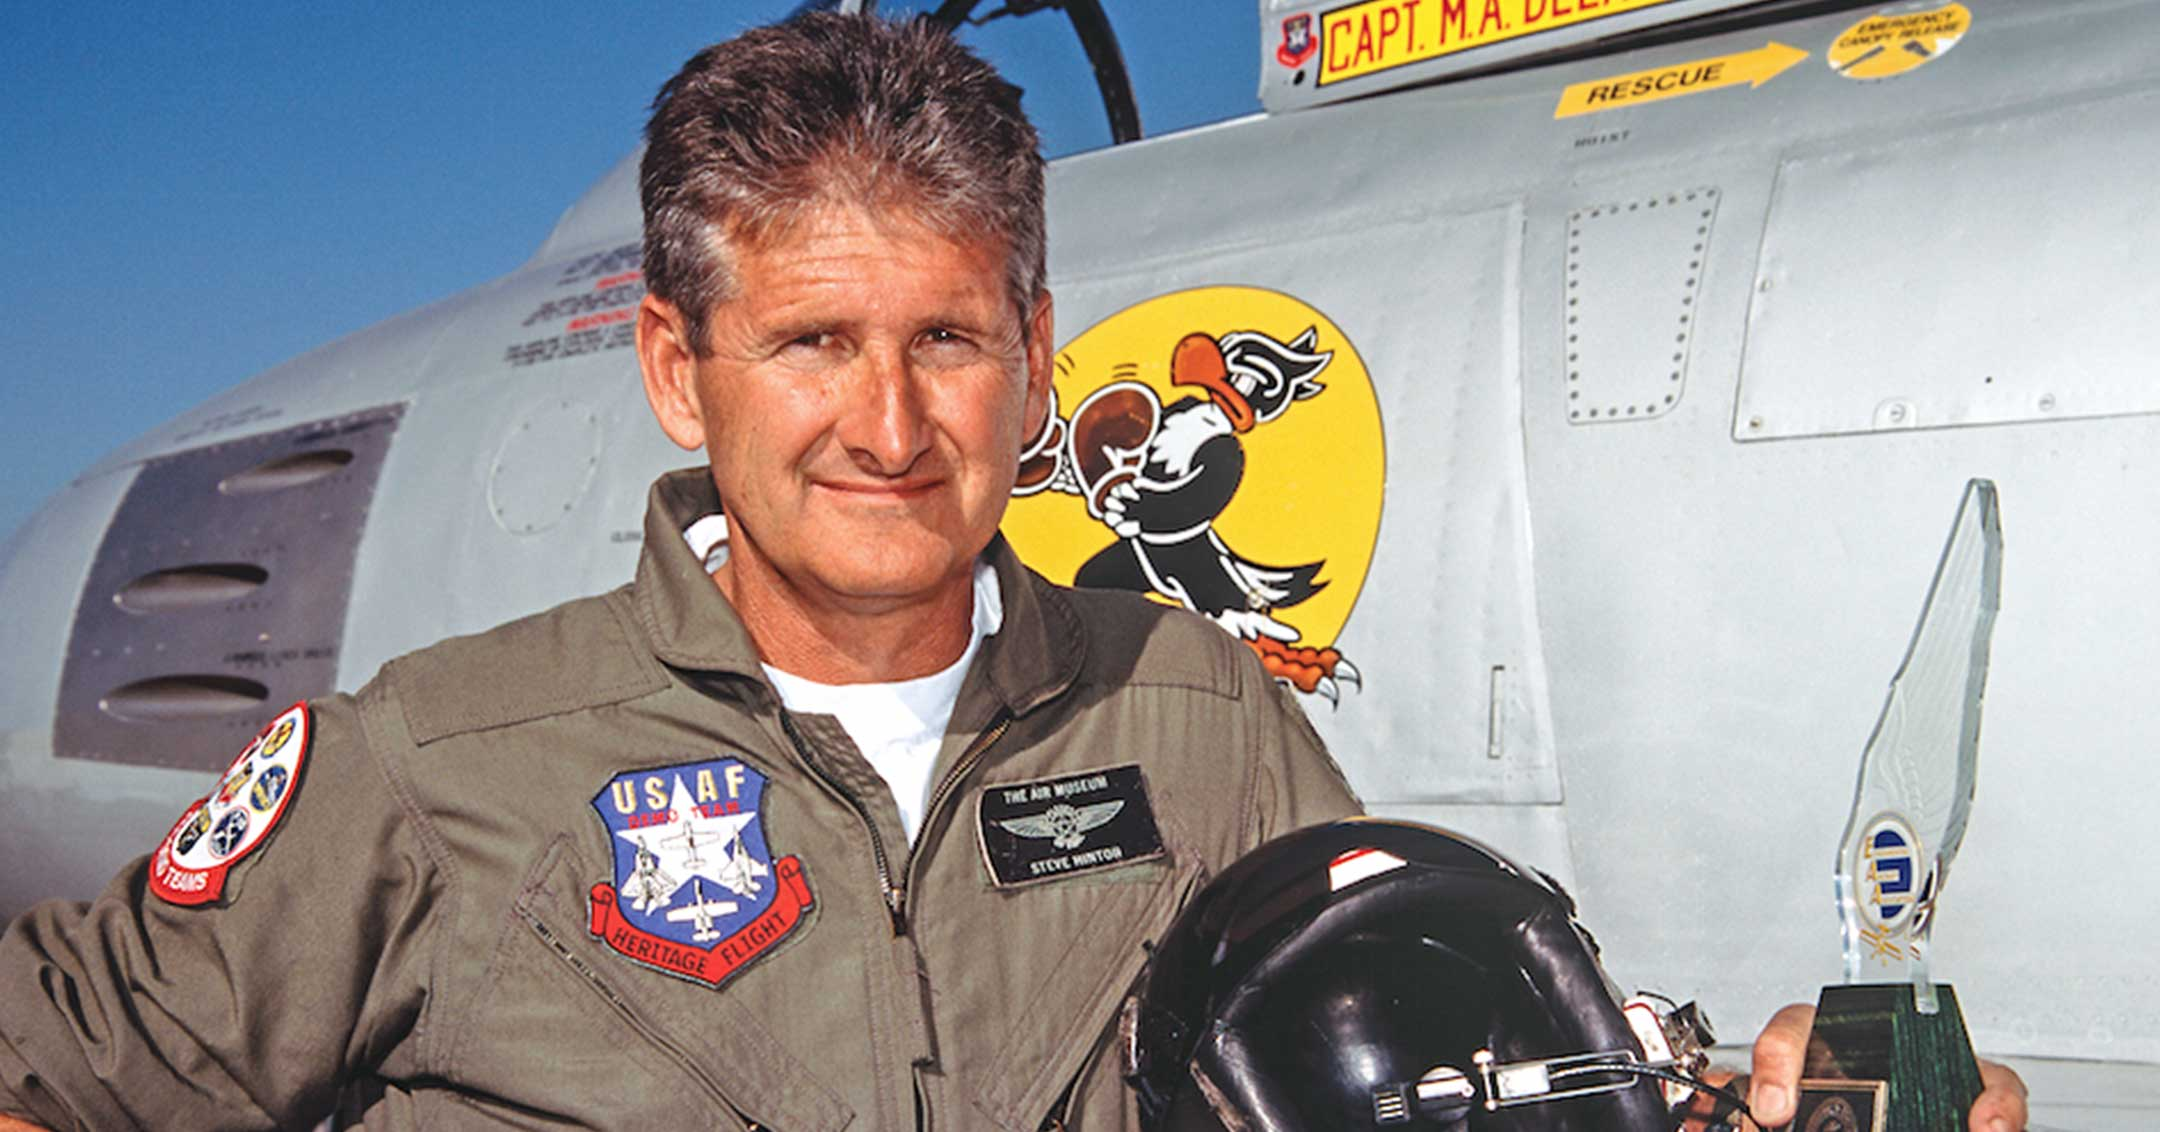 Steve Hinton | California Aviation Hall of Fame | Museum of Flying